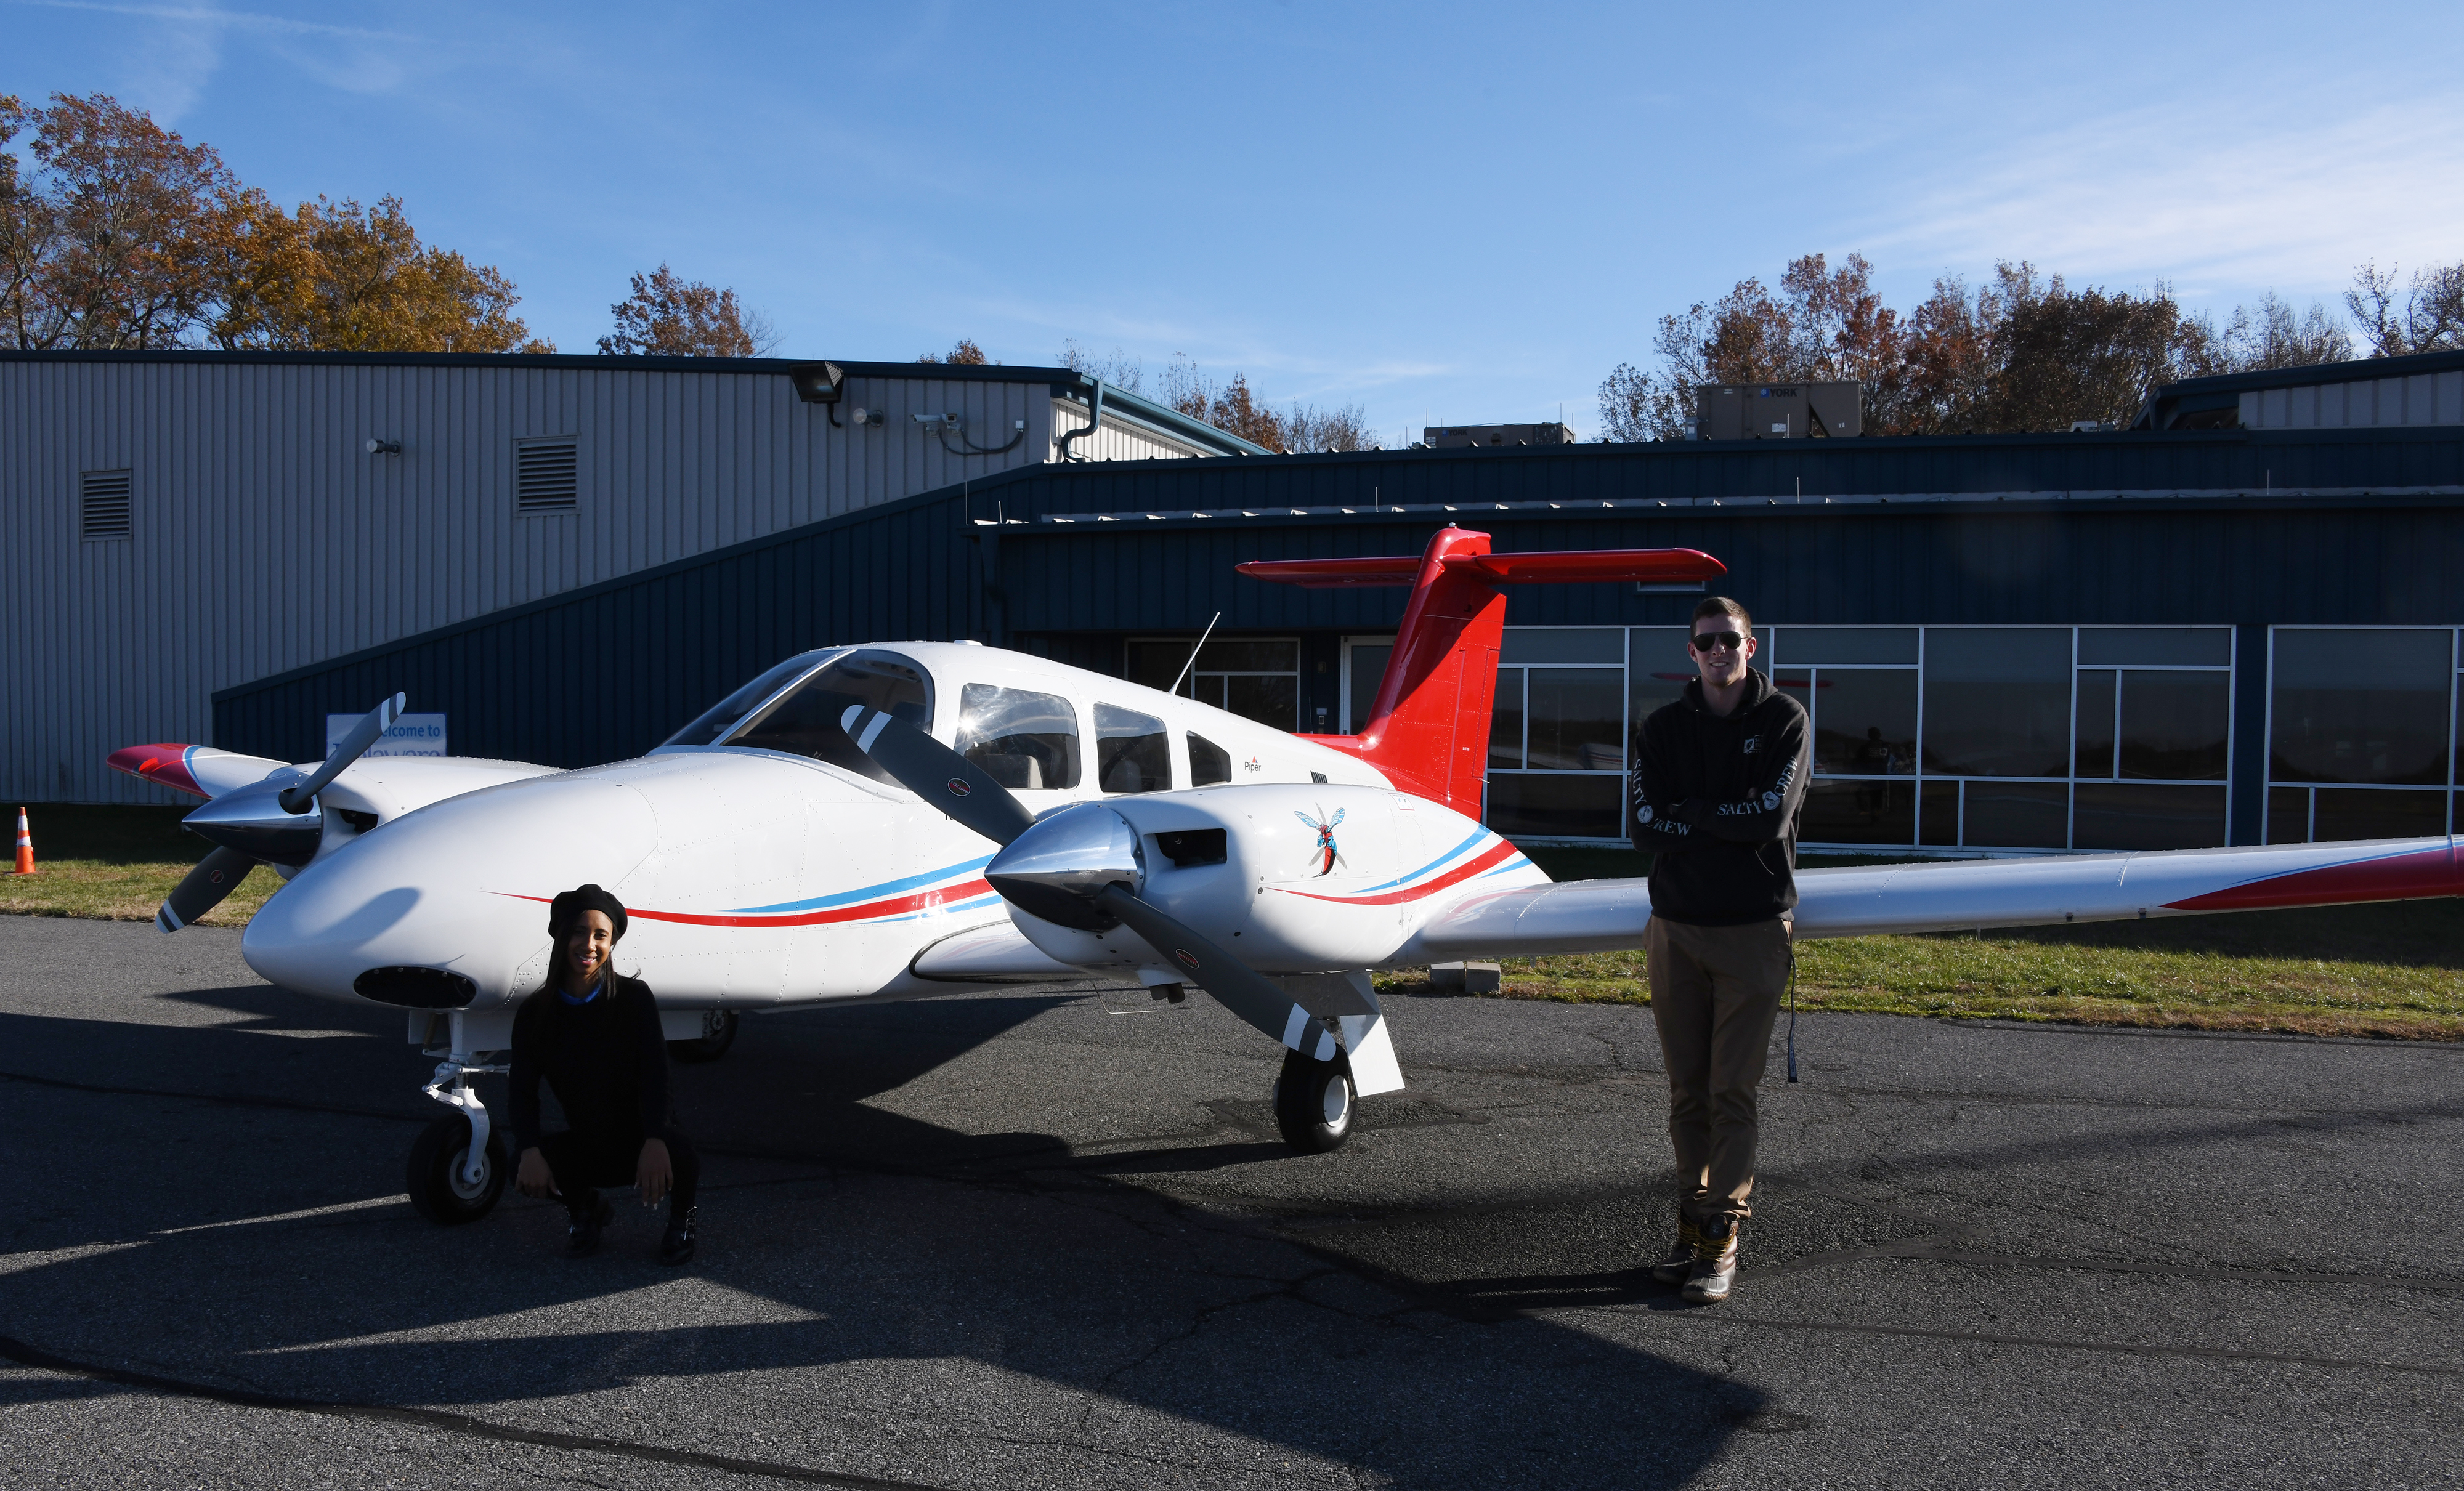 Zaneasia Perry, freshman aviation major, and Lane Deleon, flight instructor and Aviation Program alumnus, pose next to the new twin-engine Piper Seminole recently delivered to the Aviation Program at the Delaware Air Park.